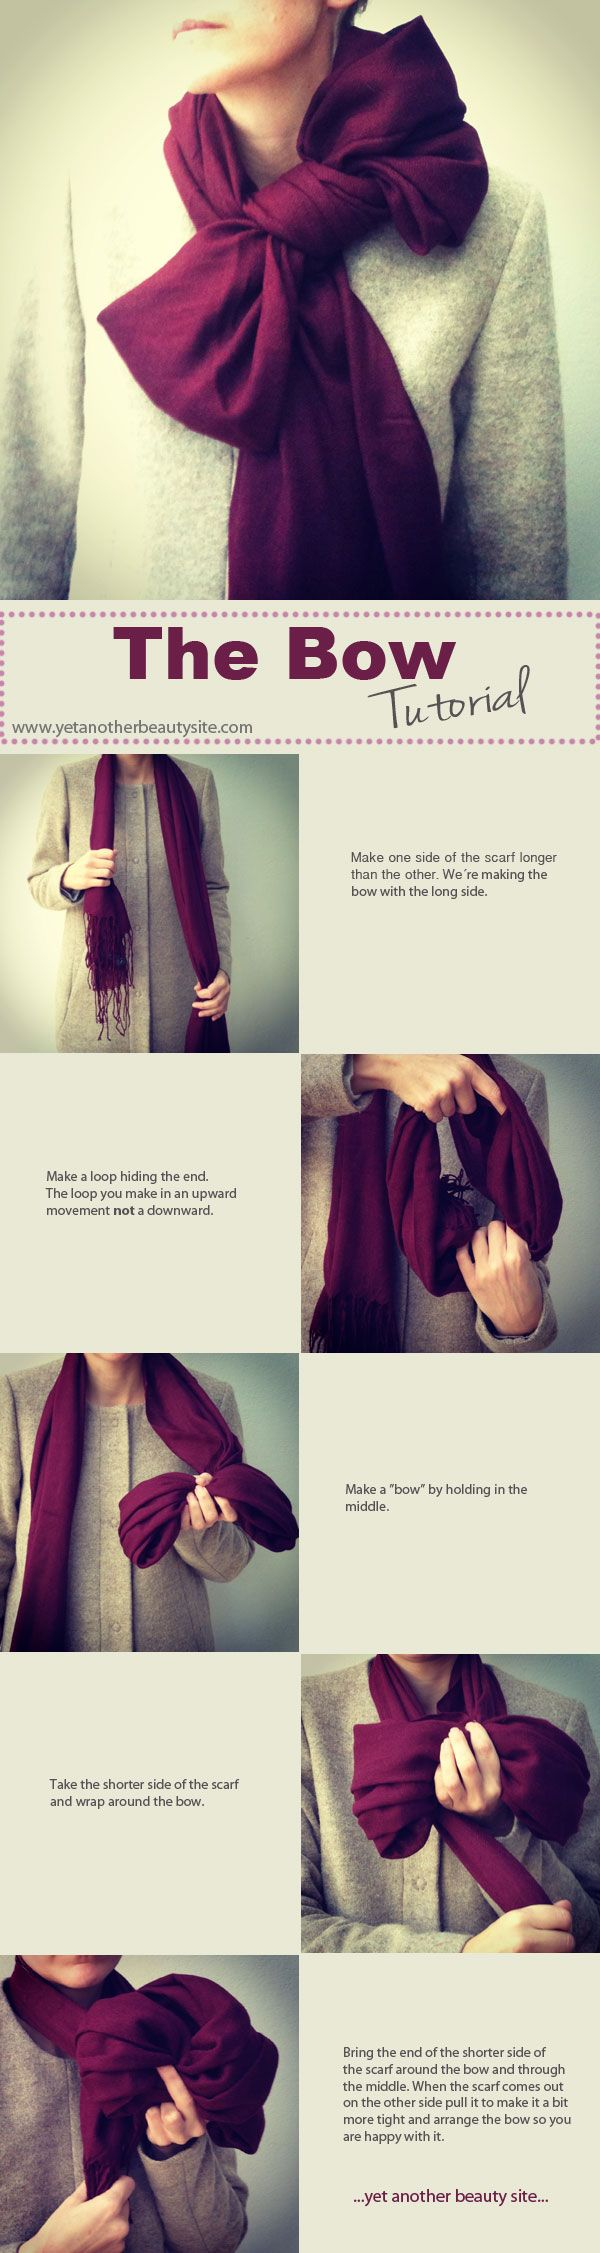 Bow scarf, so cute!